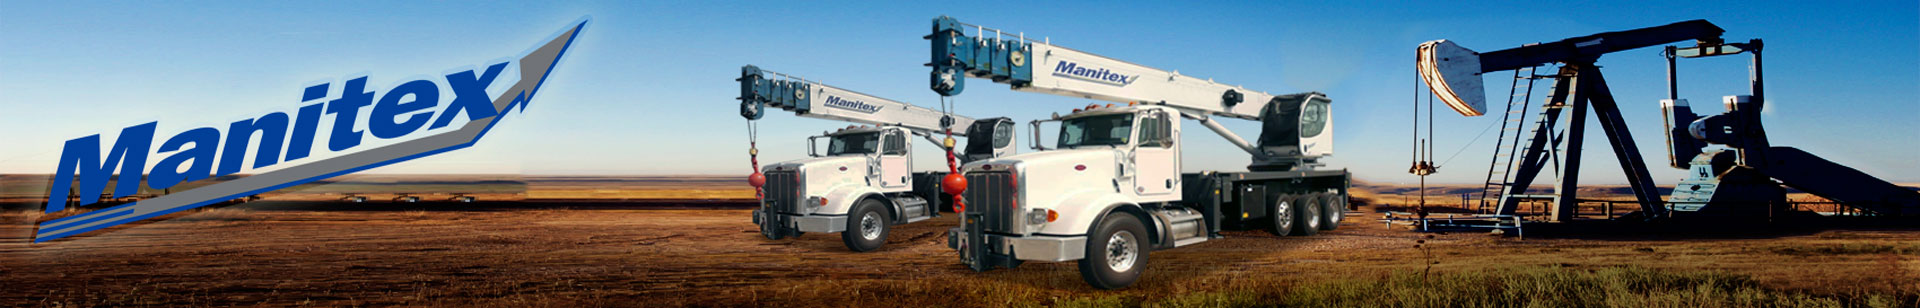 Manitex Cranes and Boom Trucks for Sale